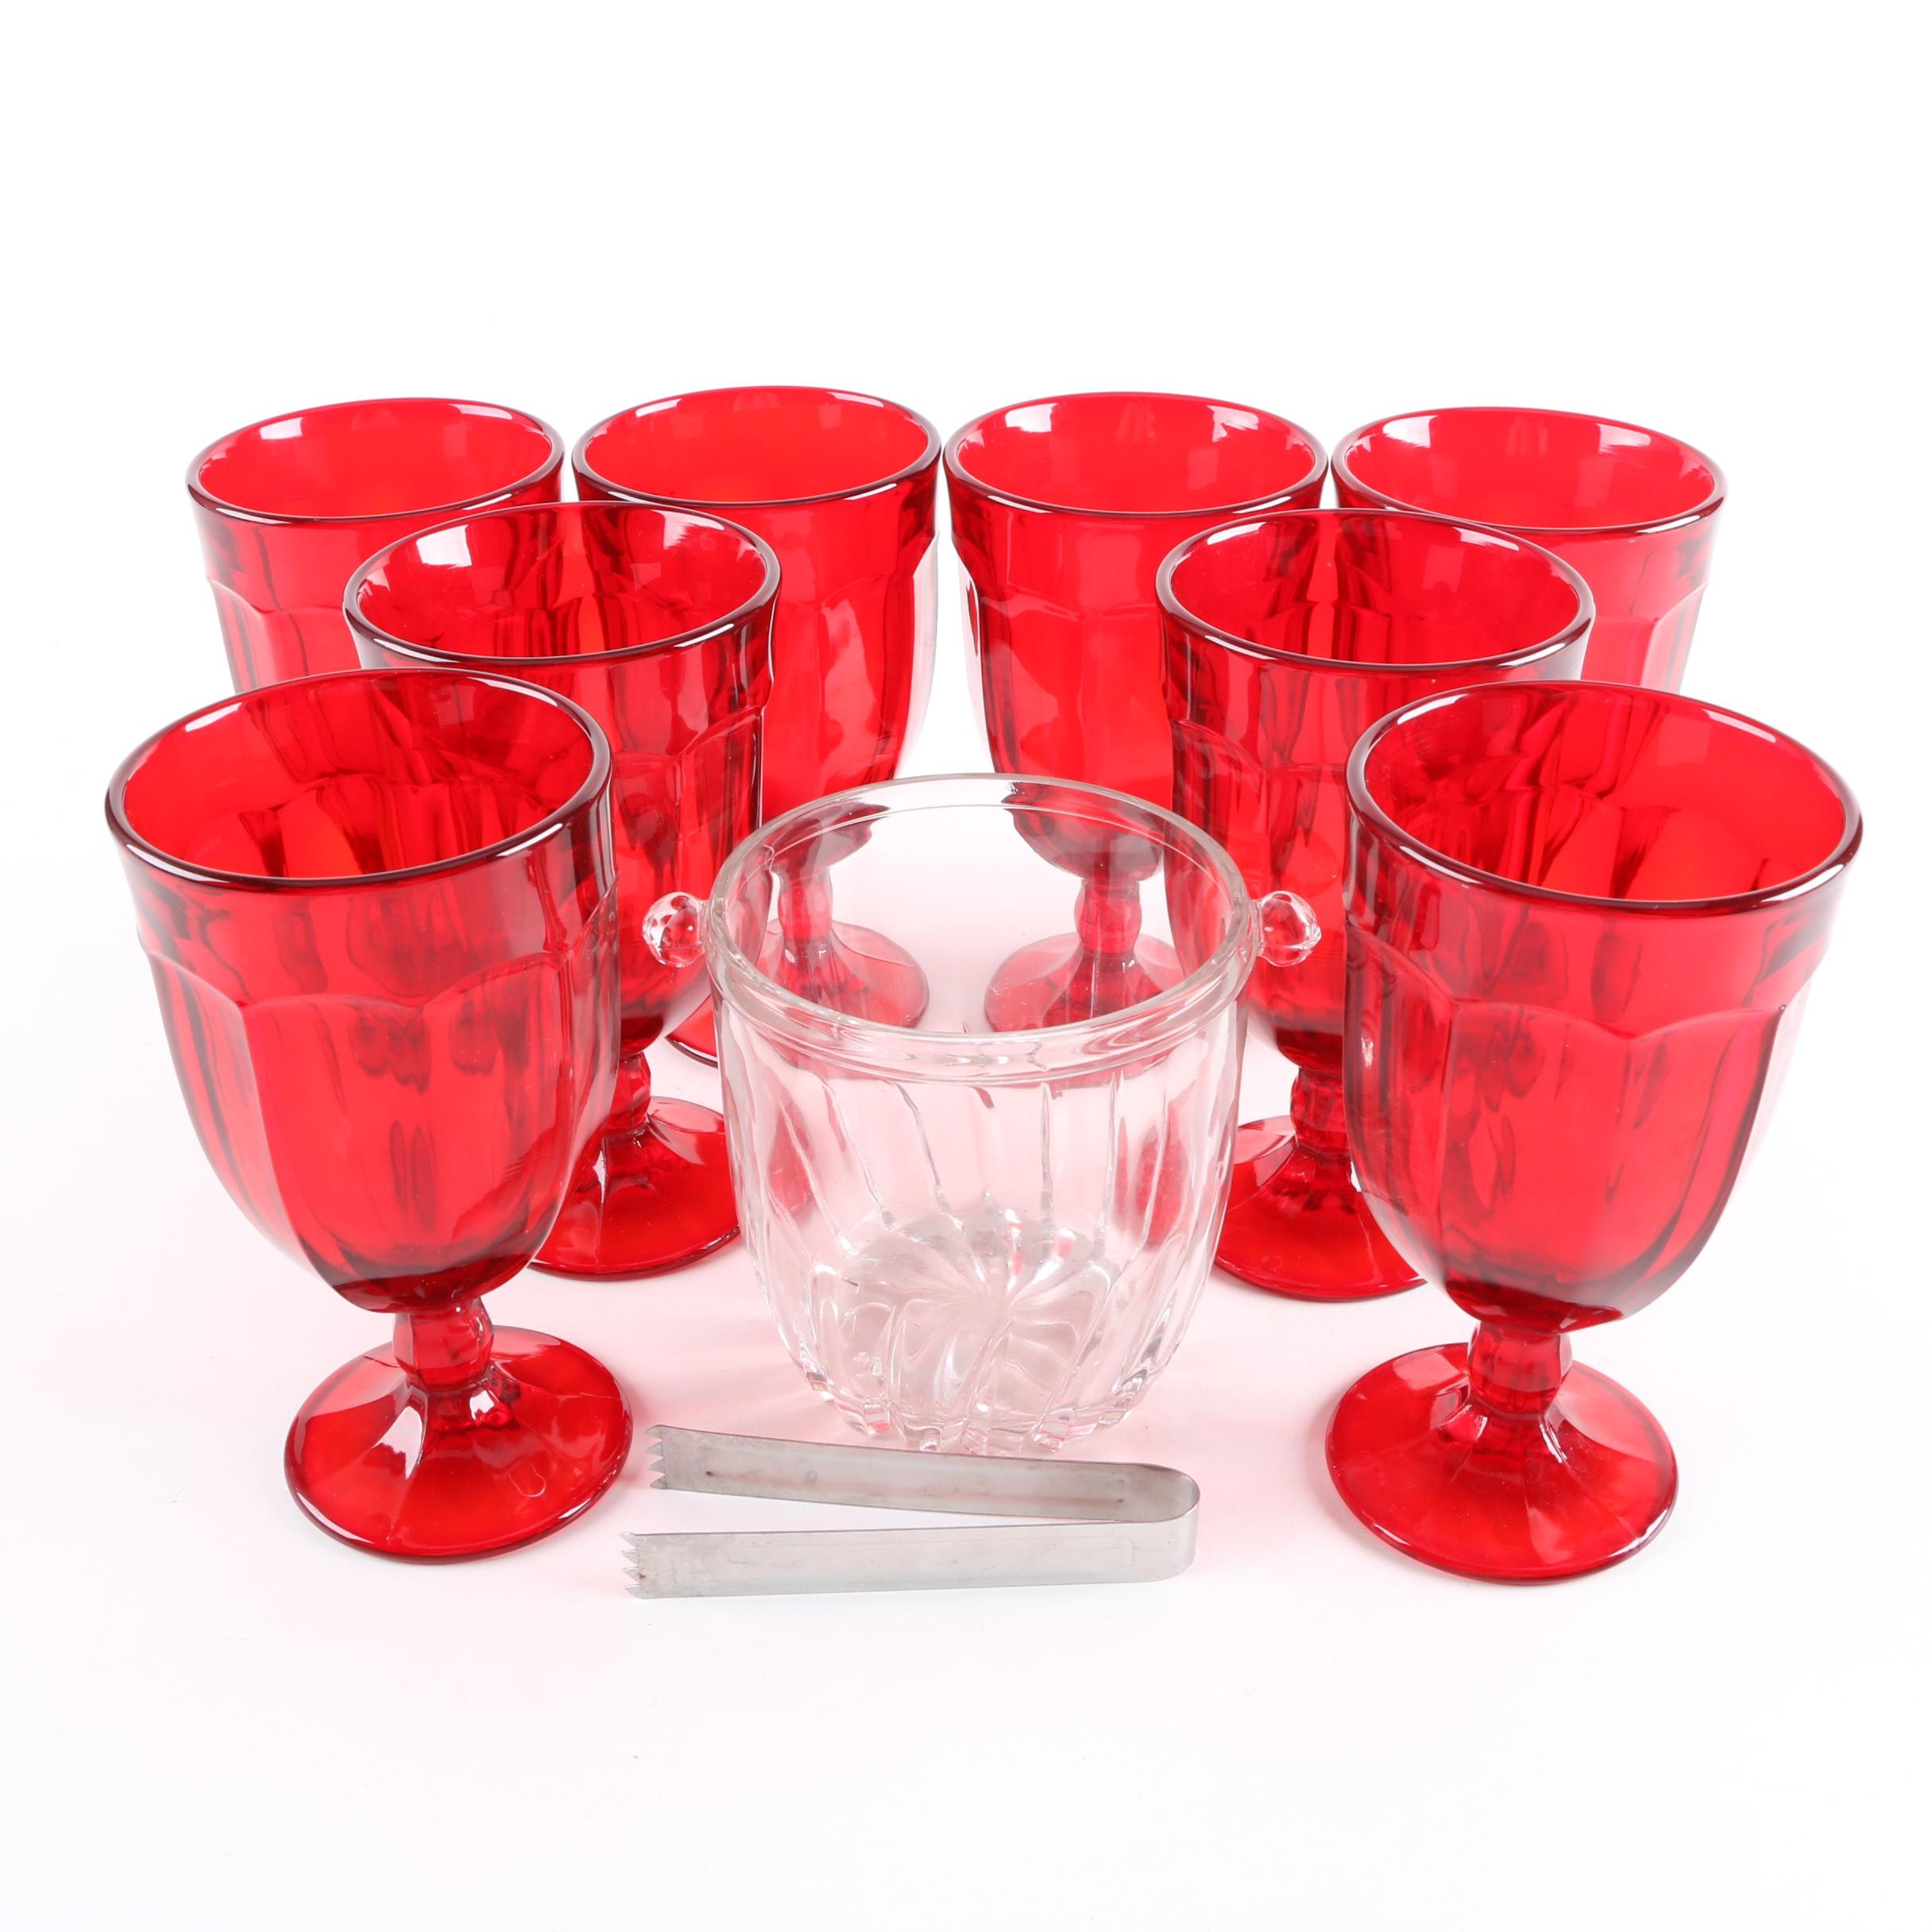 Red Goblet Glasses and Ice Bucket